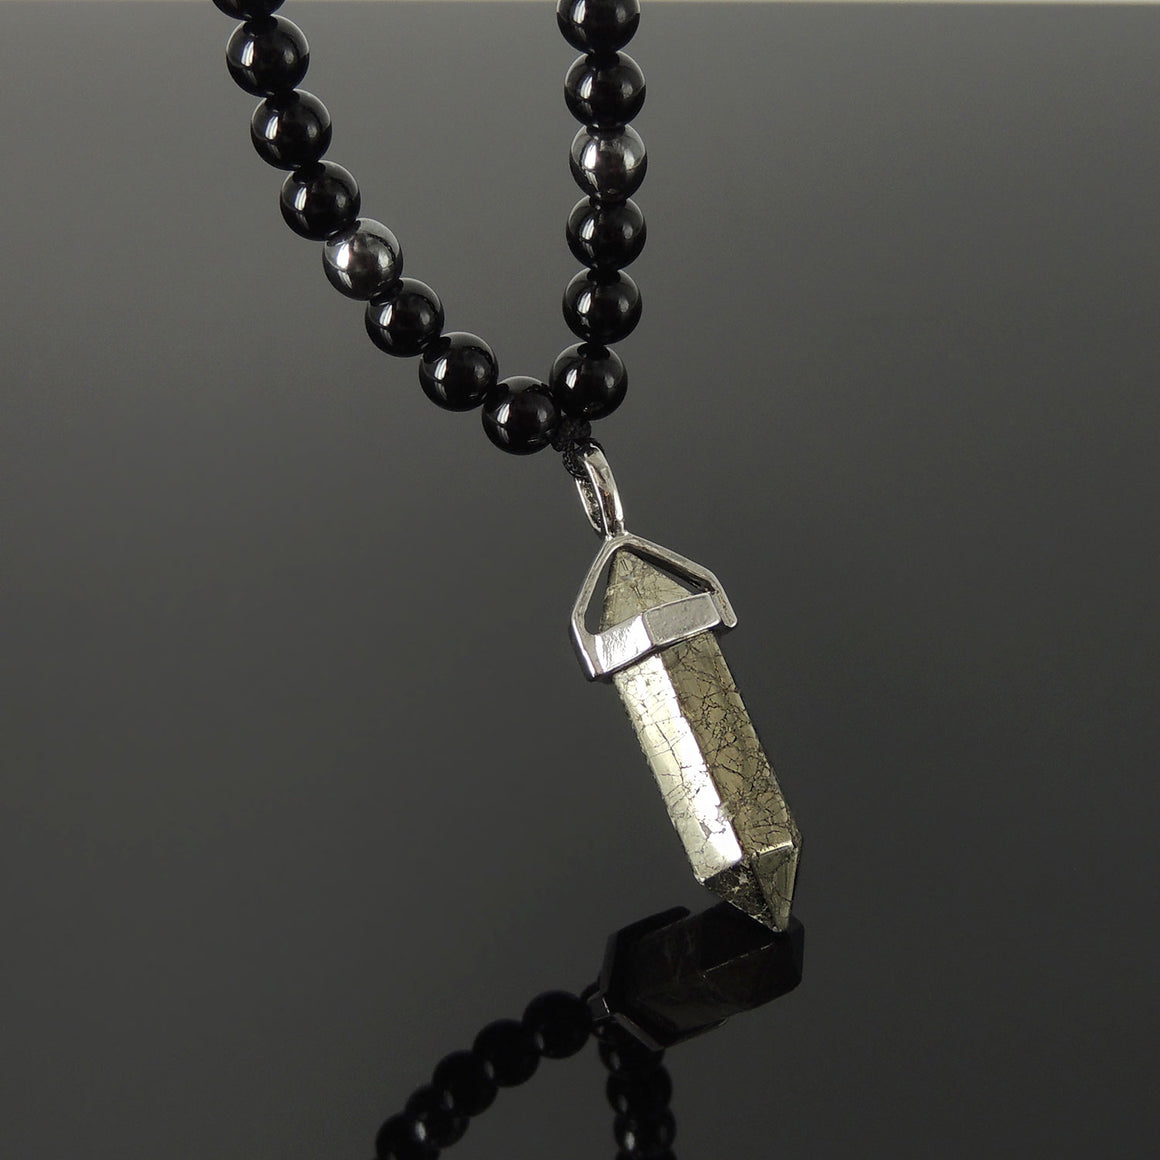 Crystal Point Pendant Gemstone Necklace - Men's Women's Custom Jewelry with Gold Pyrite, Bright Black Onyx, Hematite Beads, Handmade Adjustable Cords NK249